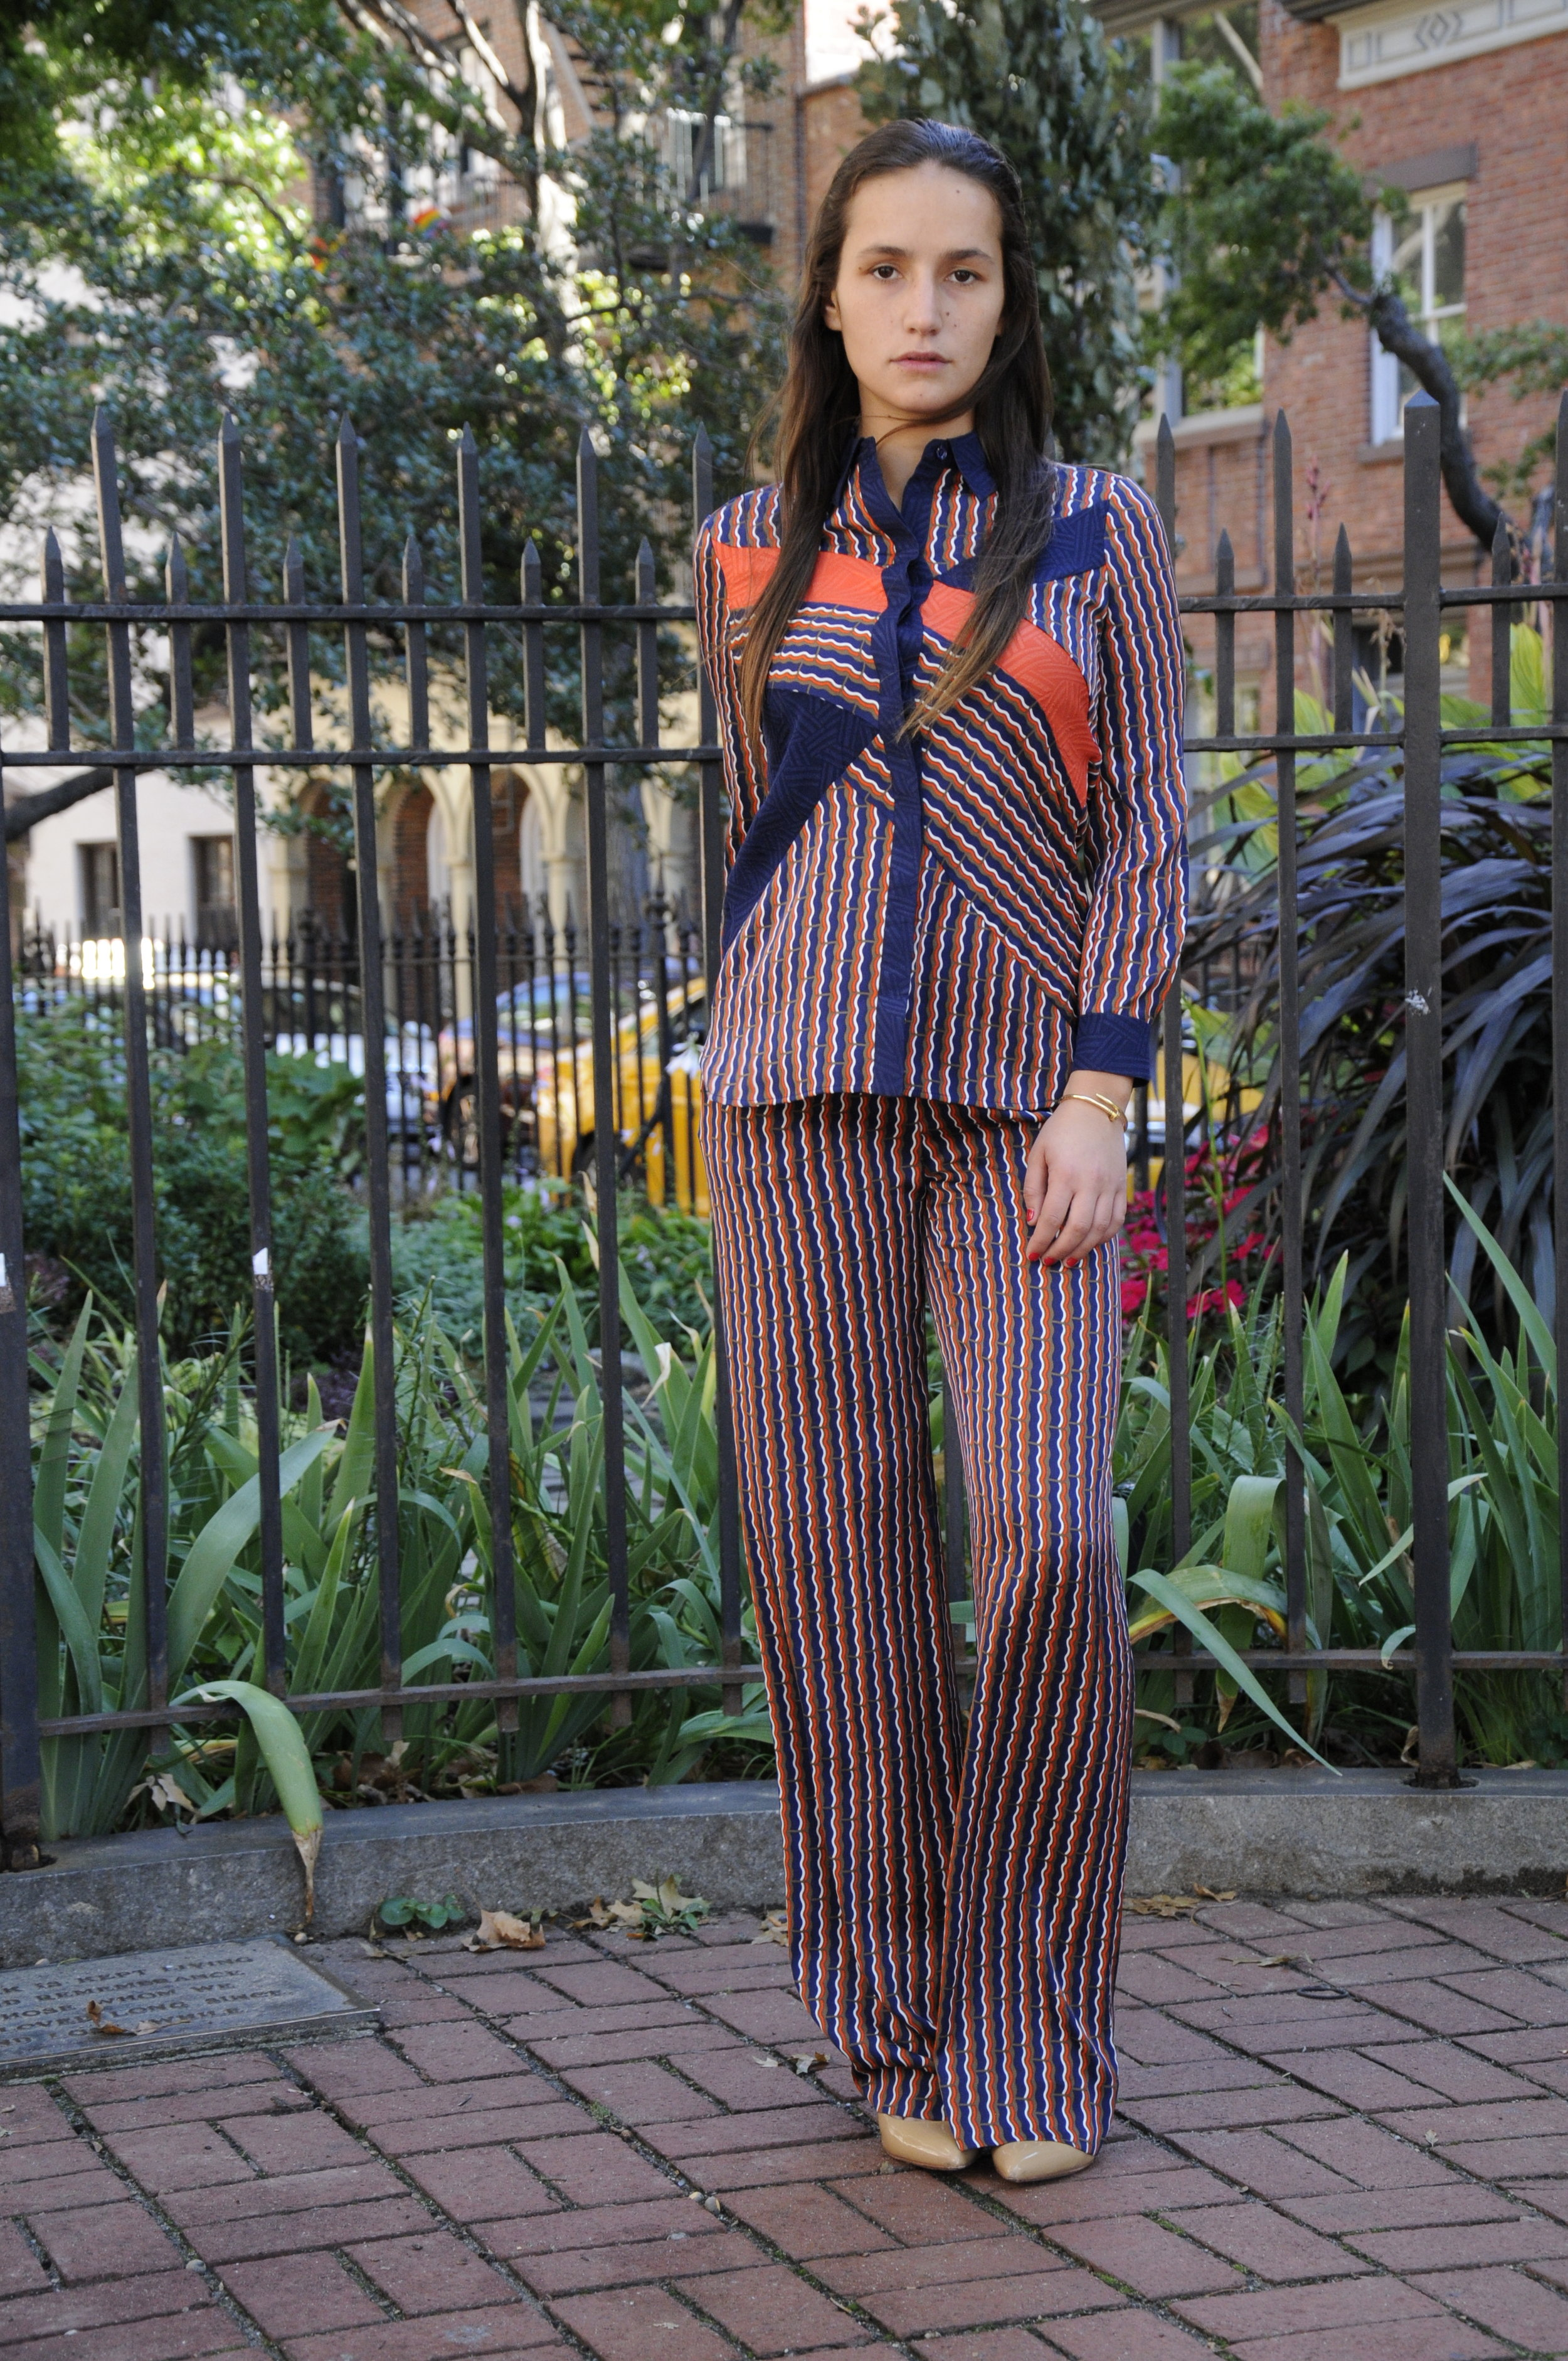 SOPHIE BICKLEY YIN 2MY YANG SISTER BLOGGERS PAJAMA TREND